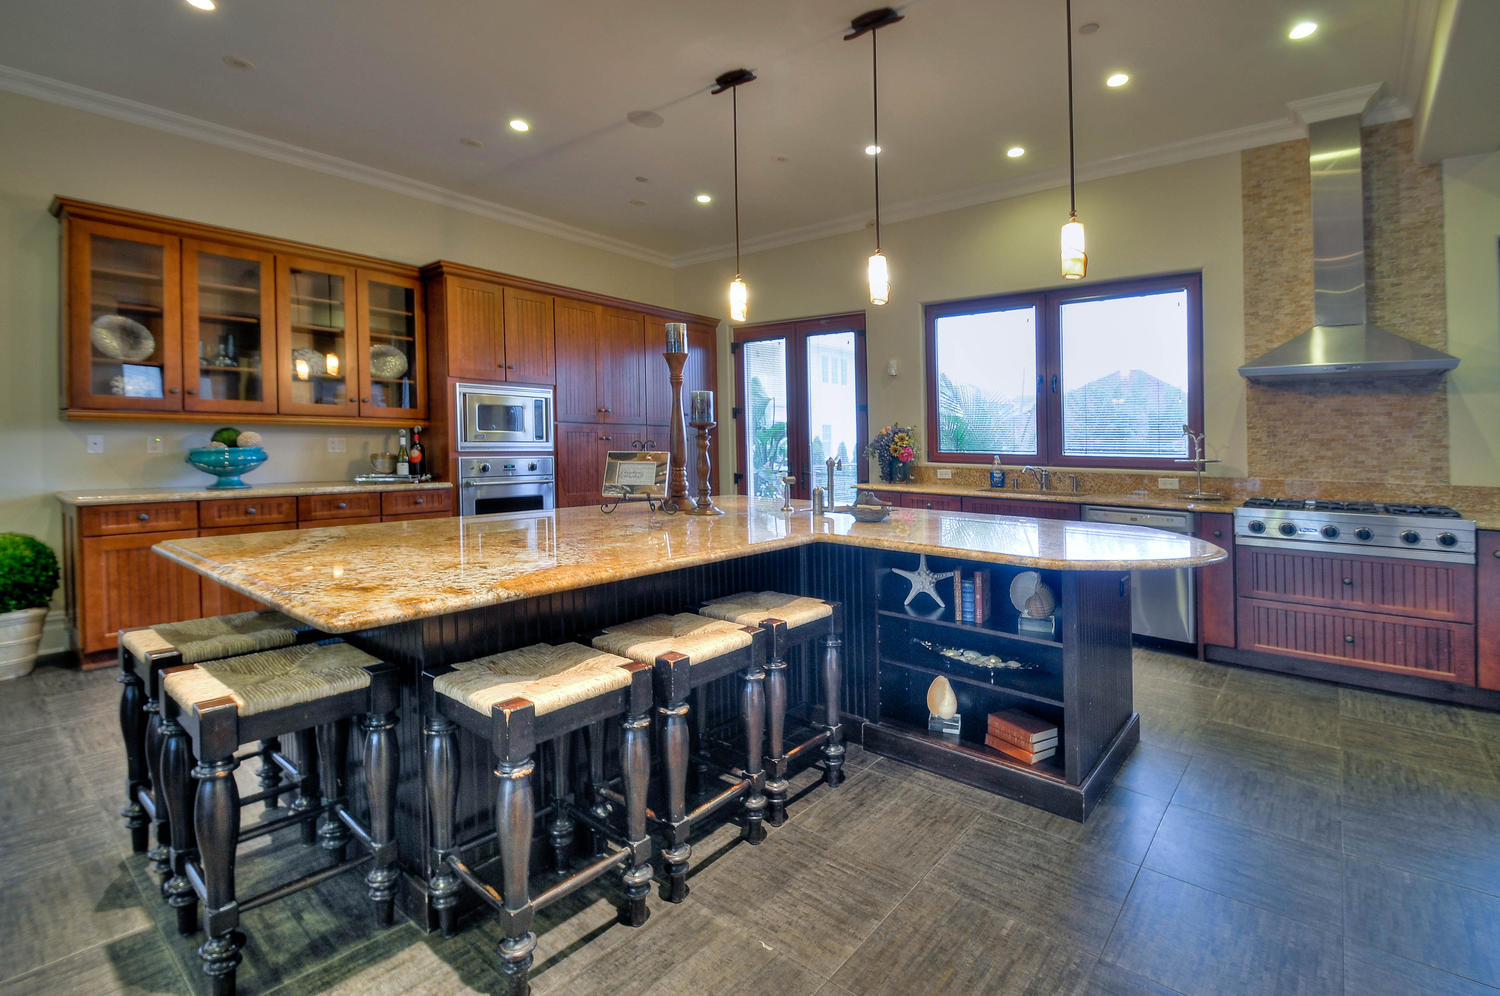 kitchen island with storage and seating kitchen island with chairs Kitchen island with storage and seating Photo 2